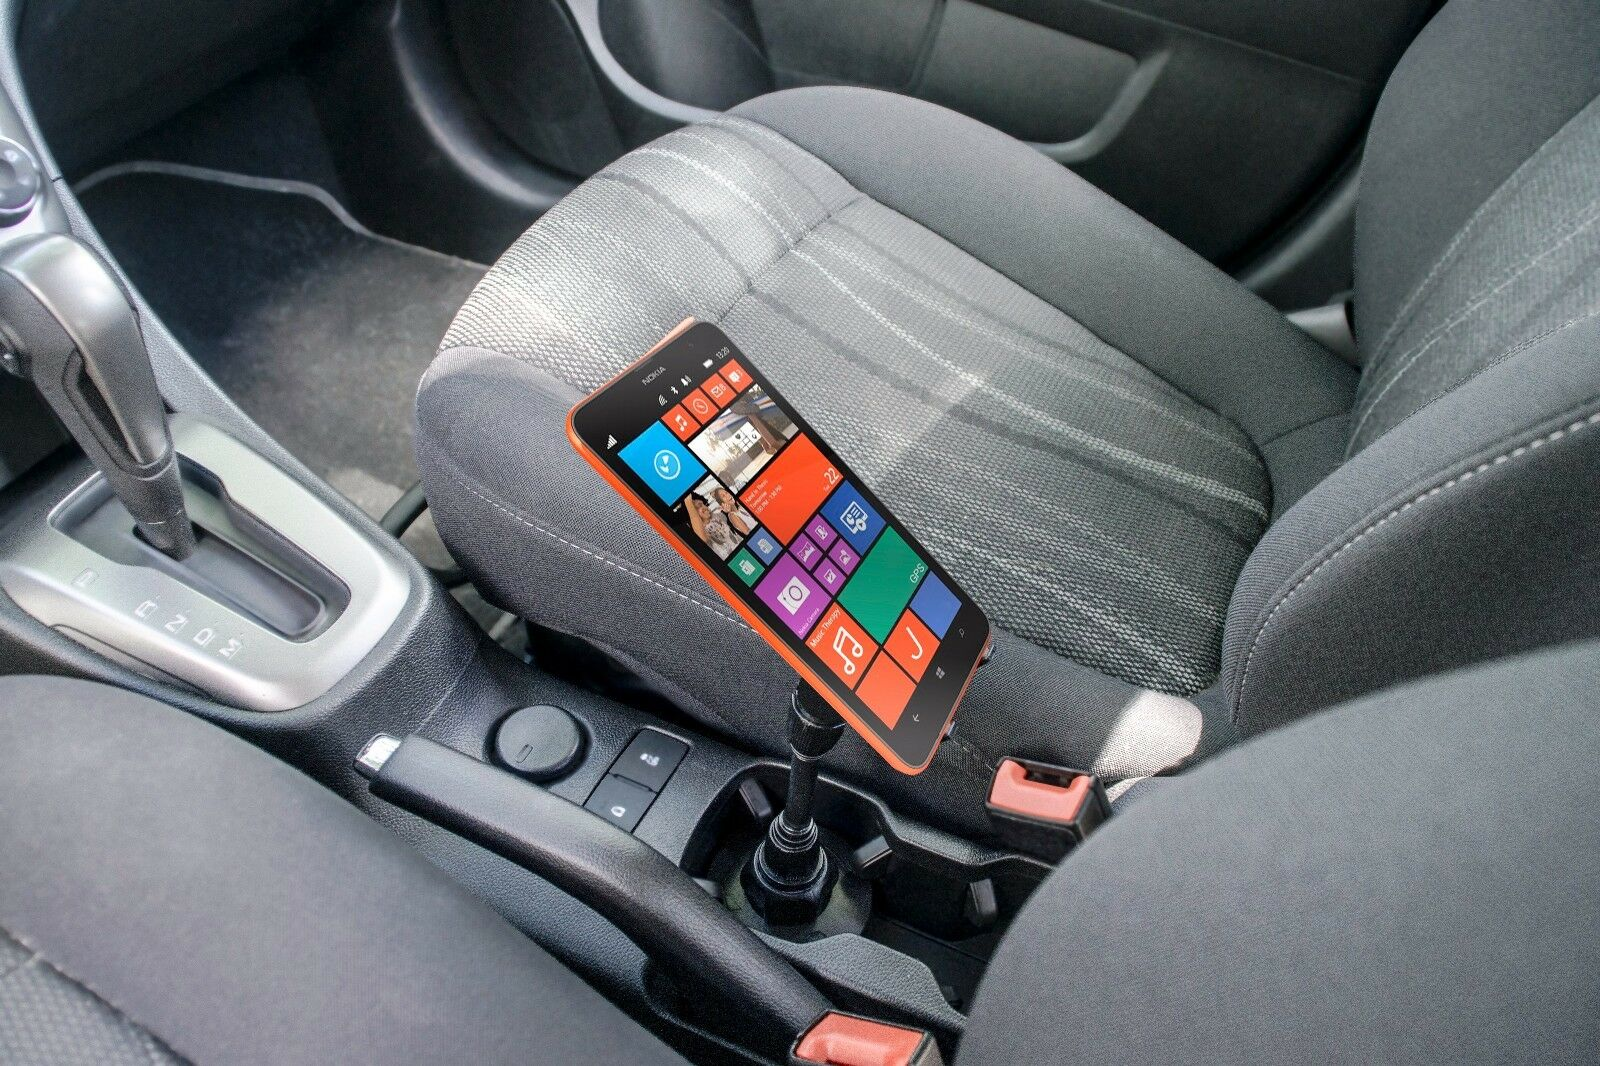 H20 Smartphone Cup Holder Magnet Mount